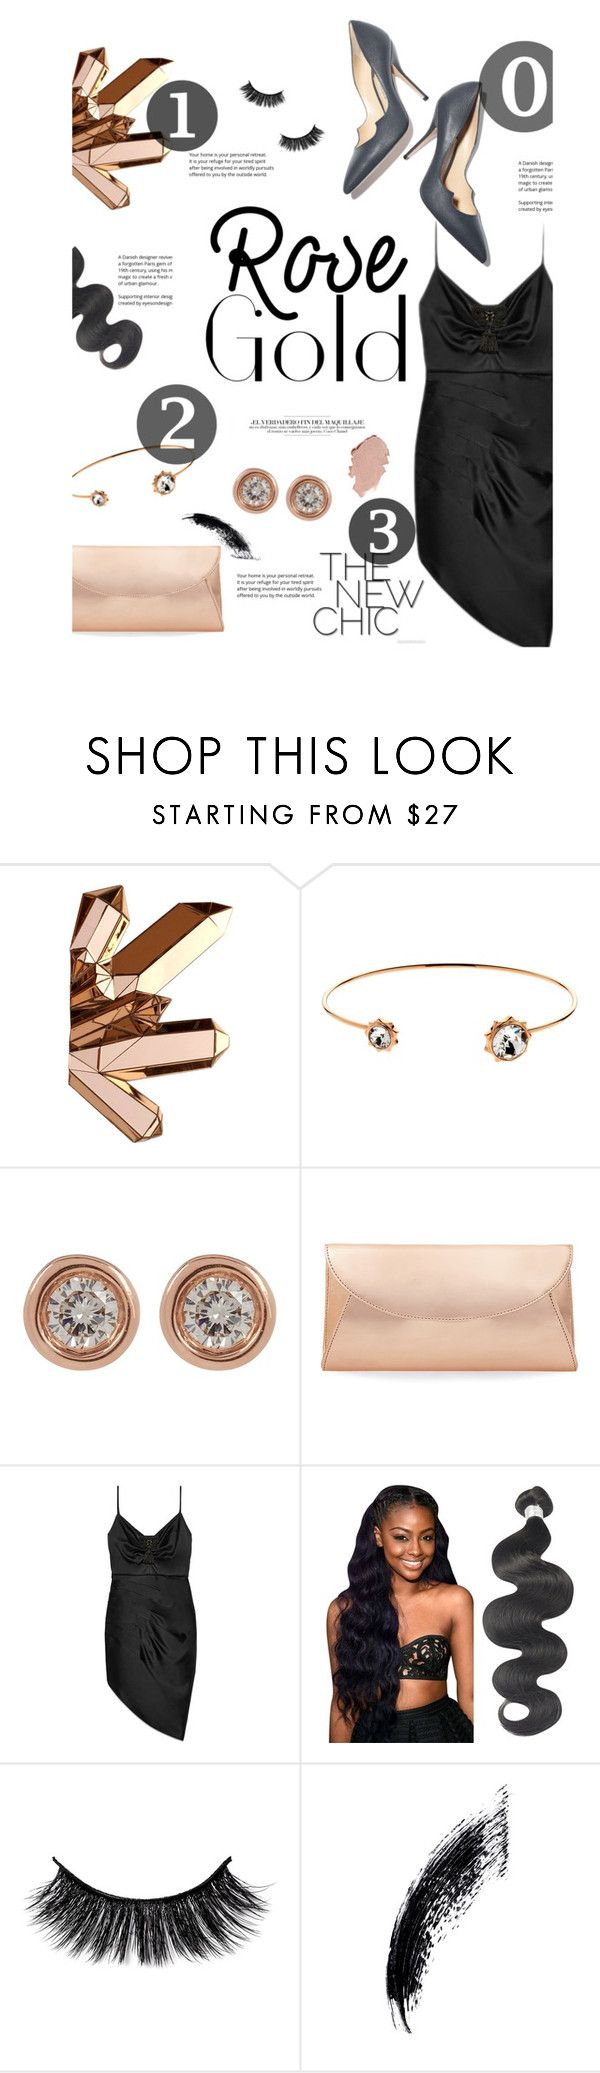 """Rose Gold"" by sierrrrrra ❤ liked on Polyvore featuring Paul Andrew, Cachet, Ron Hami, Steve Madden, Gucci and rosegold"